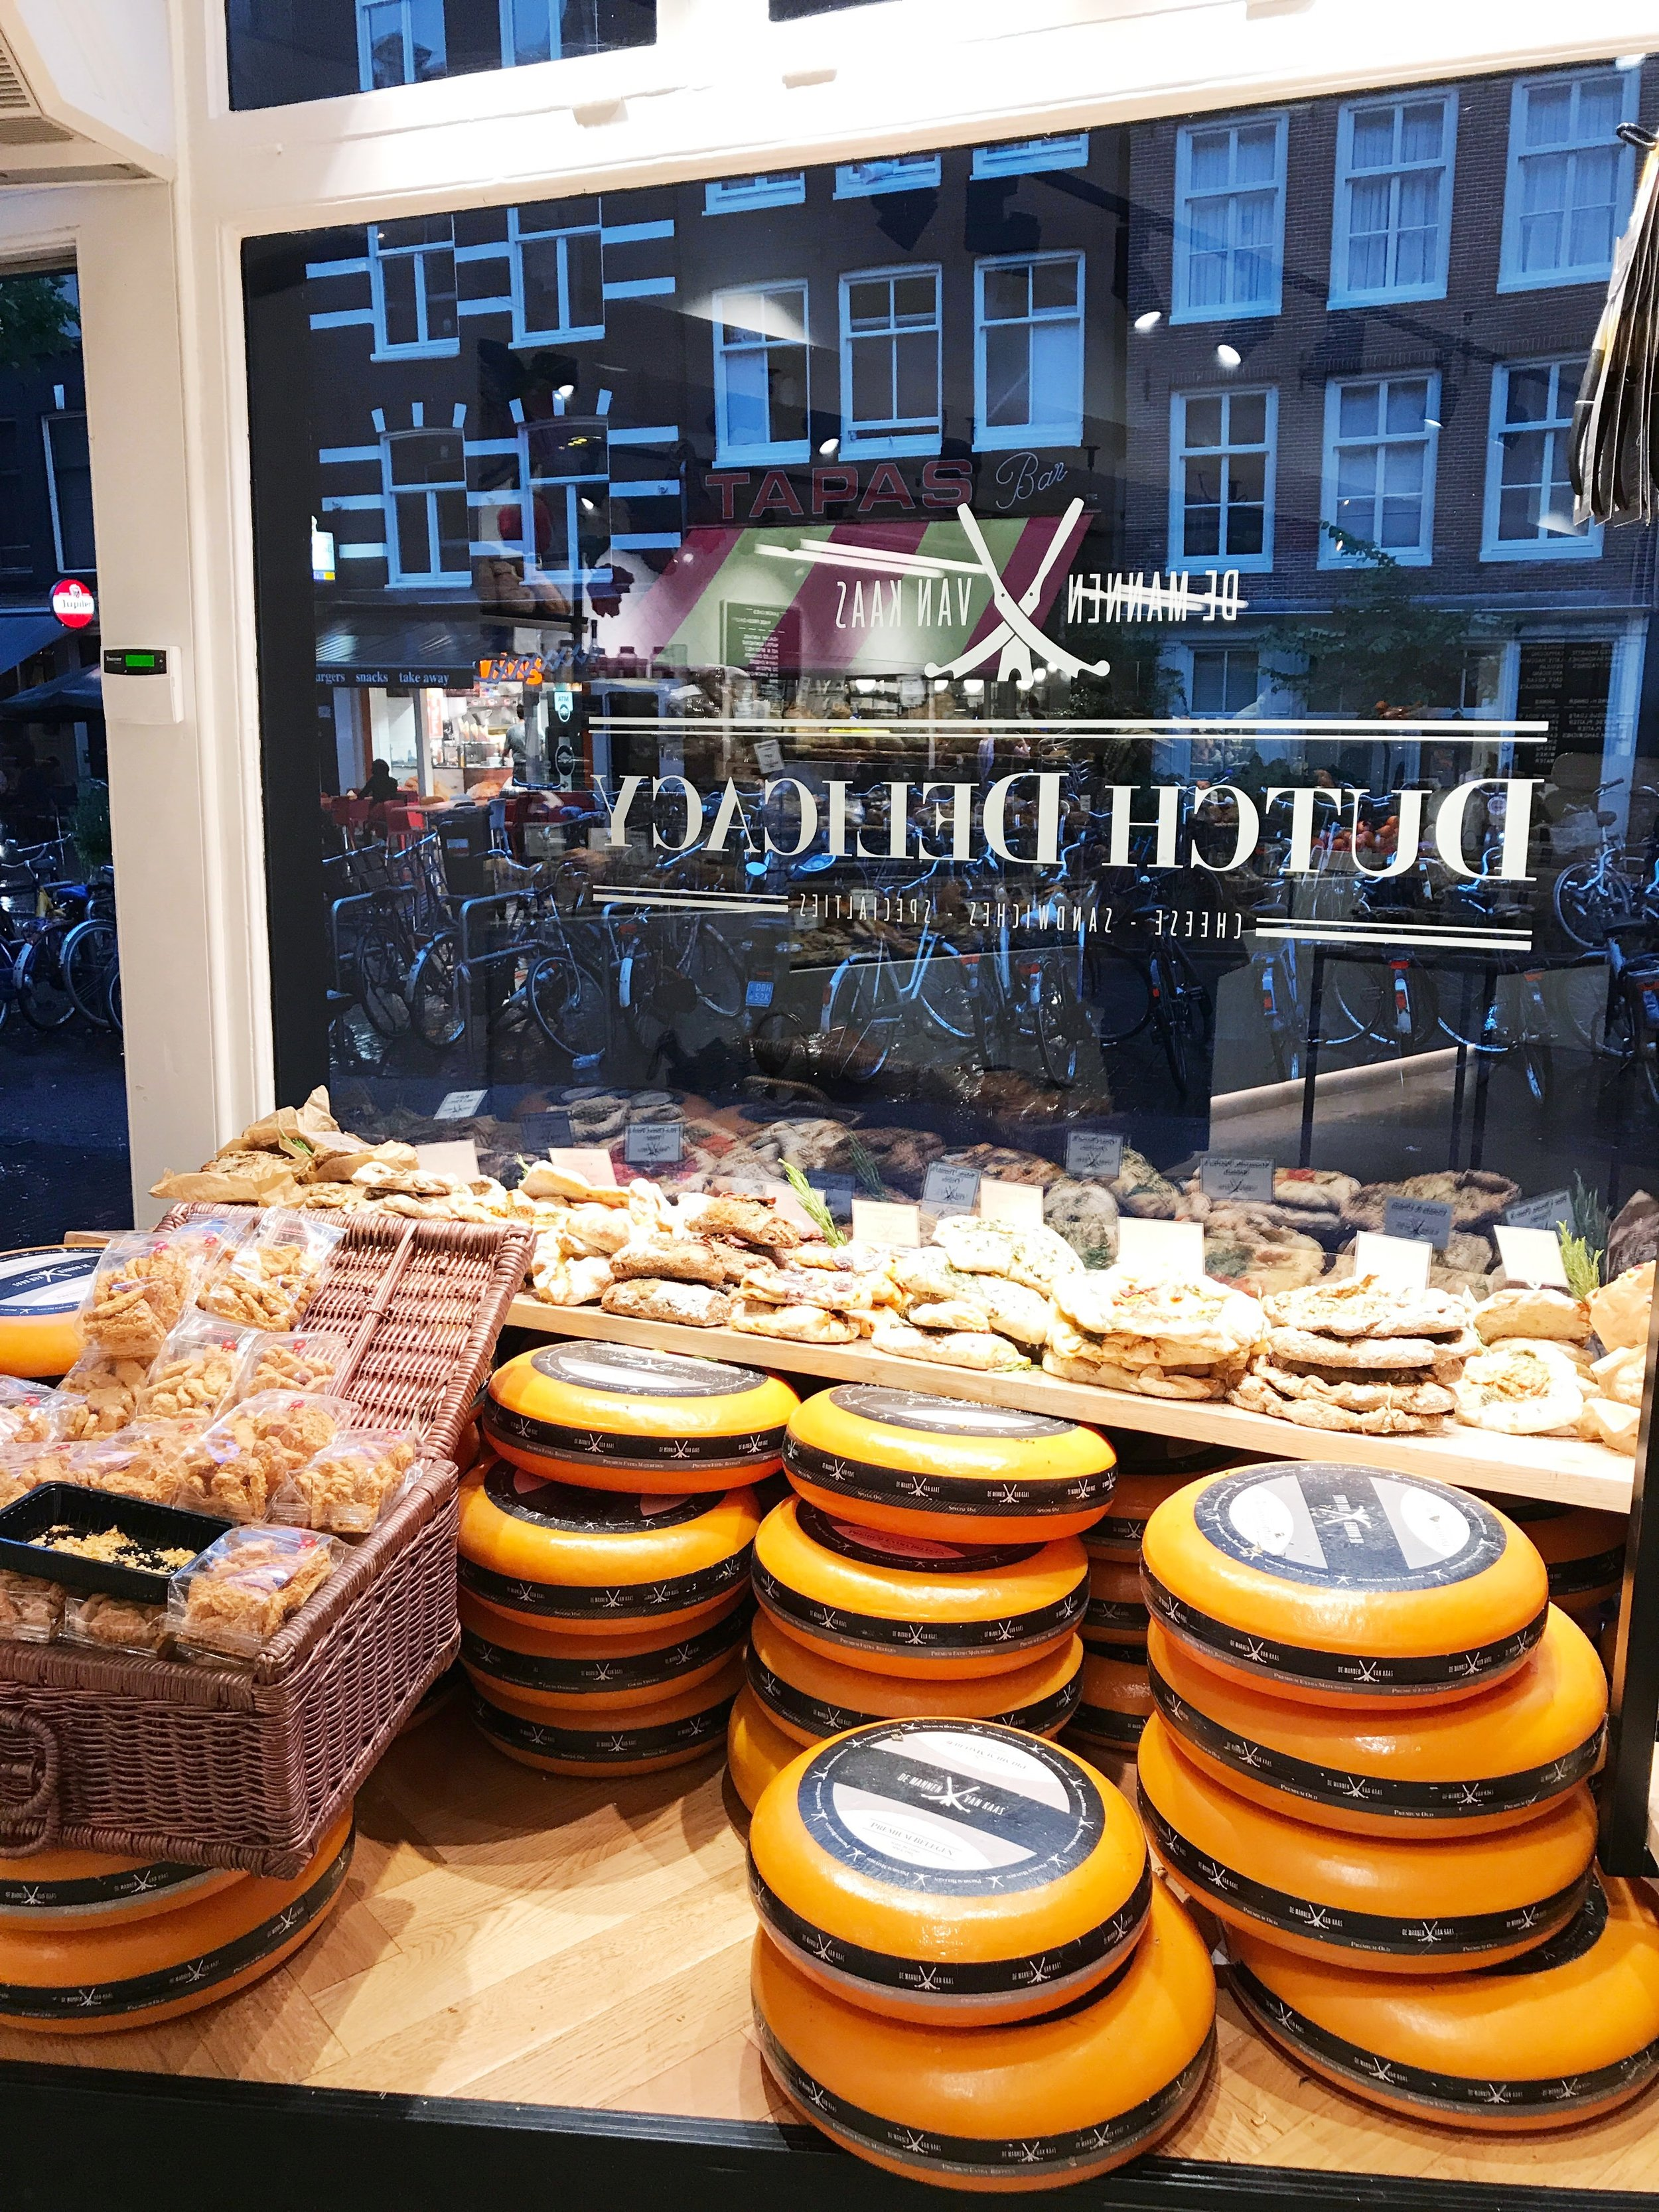 Dutch Delicacy Cheese Amsterdam